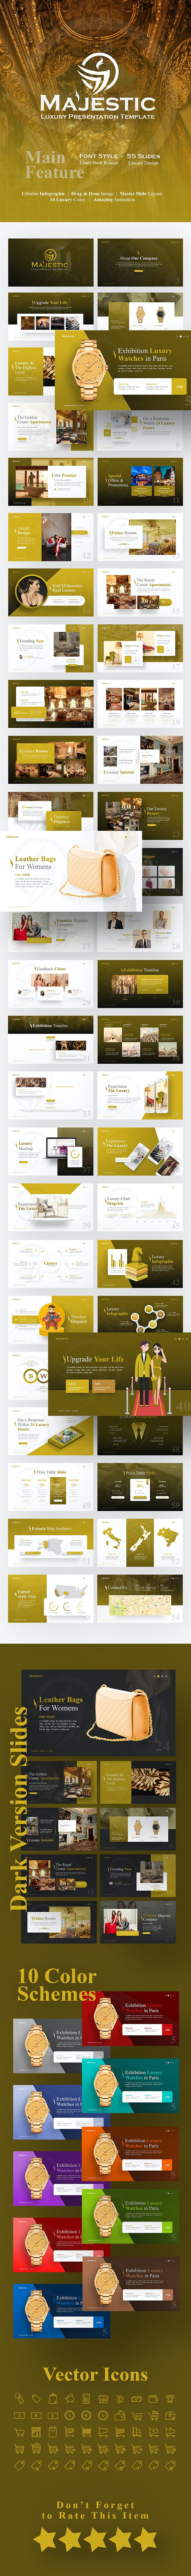 Majestic Luxury PowerPoint Template - PowerPoint Templates Presentation Templates